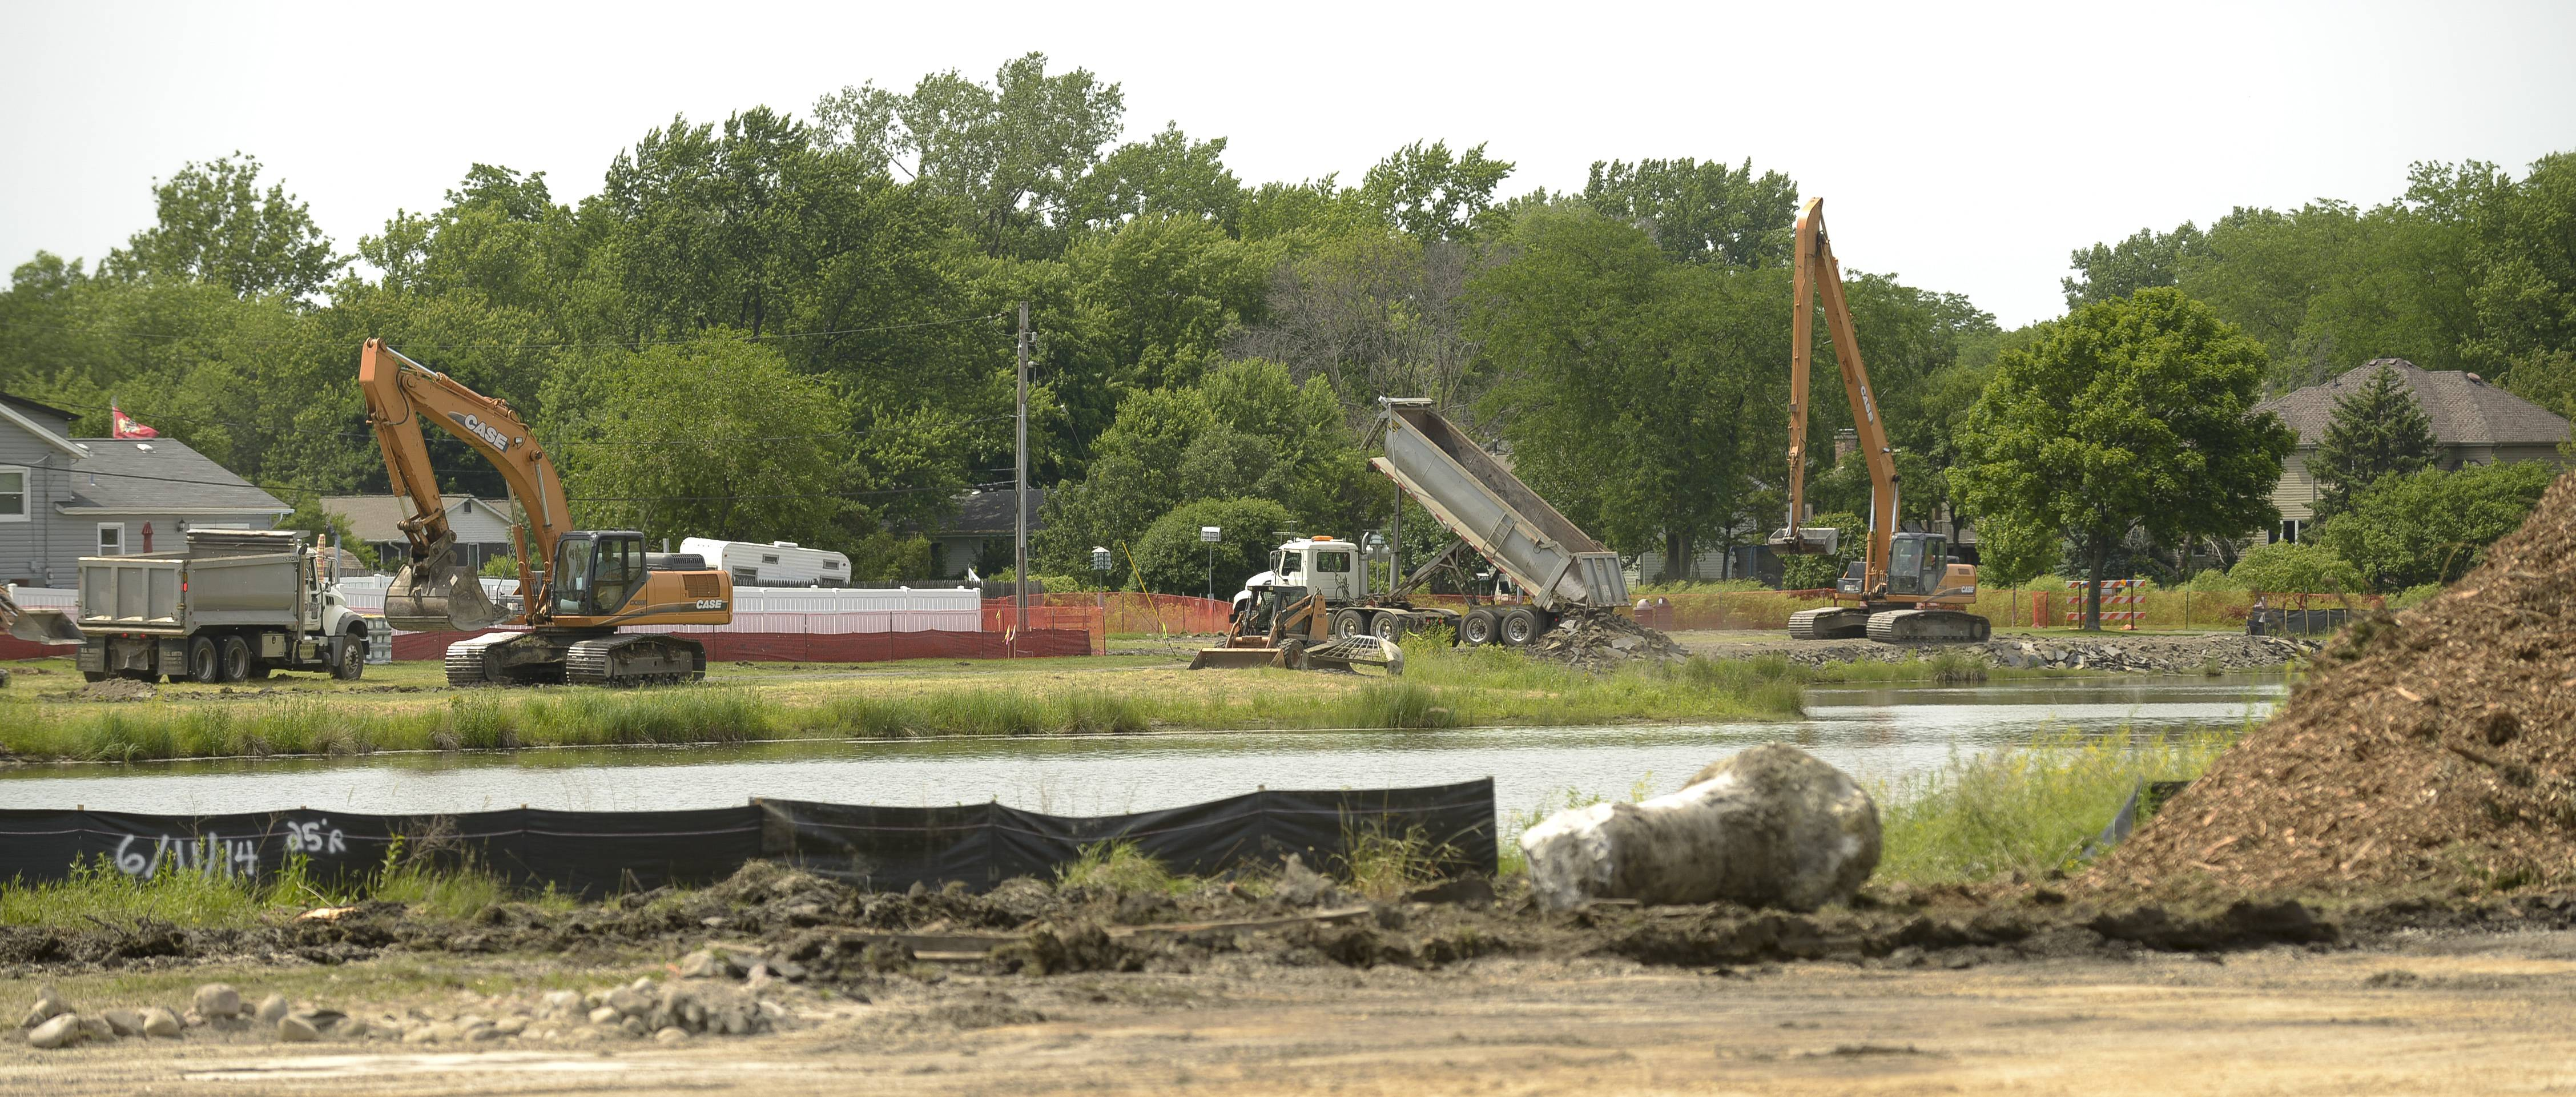 Construction has begun on a $12.5 million flood-relief project at Armstrong Park in Carol Stream. The work is expected to continue until next spring.